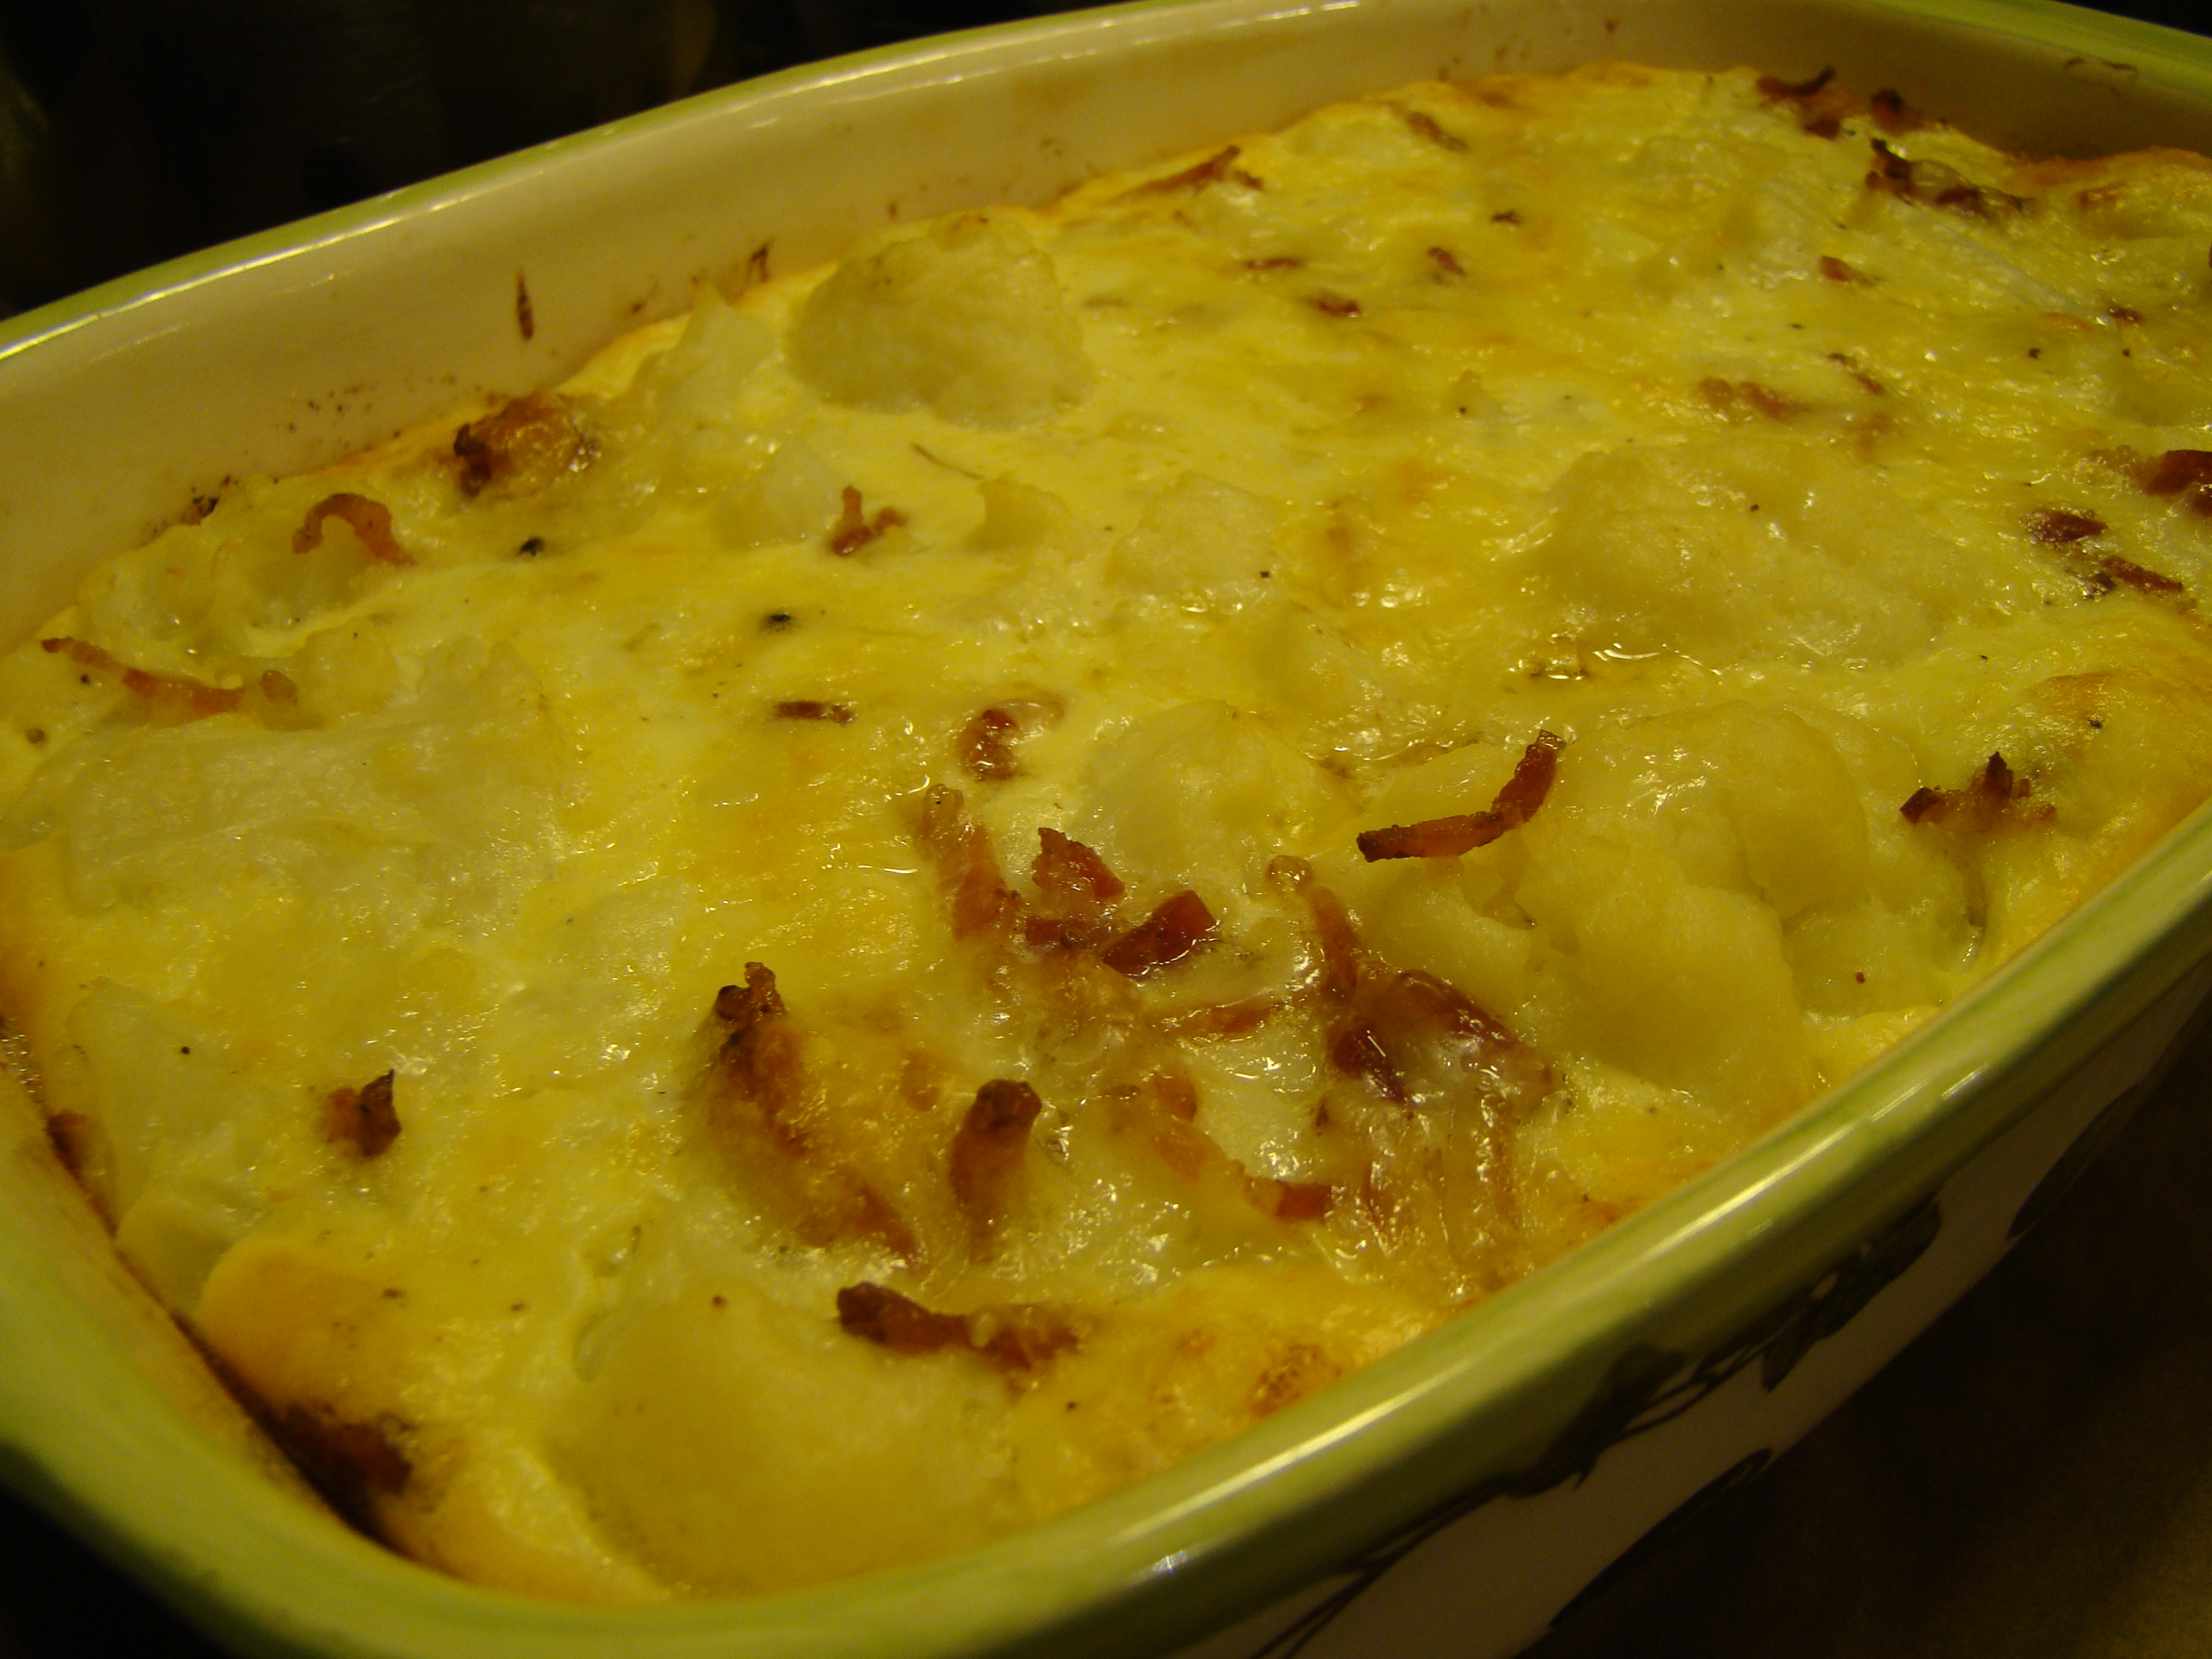 ... Fridays with Dorie: Cauliflower-Bacon Gratin | A Plateful of Happiness